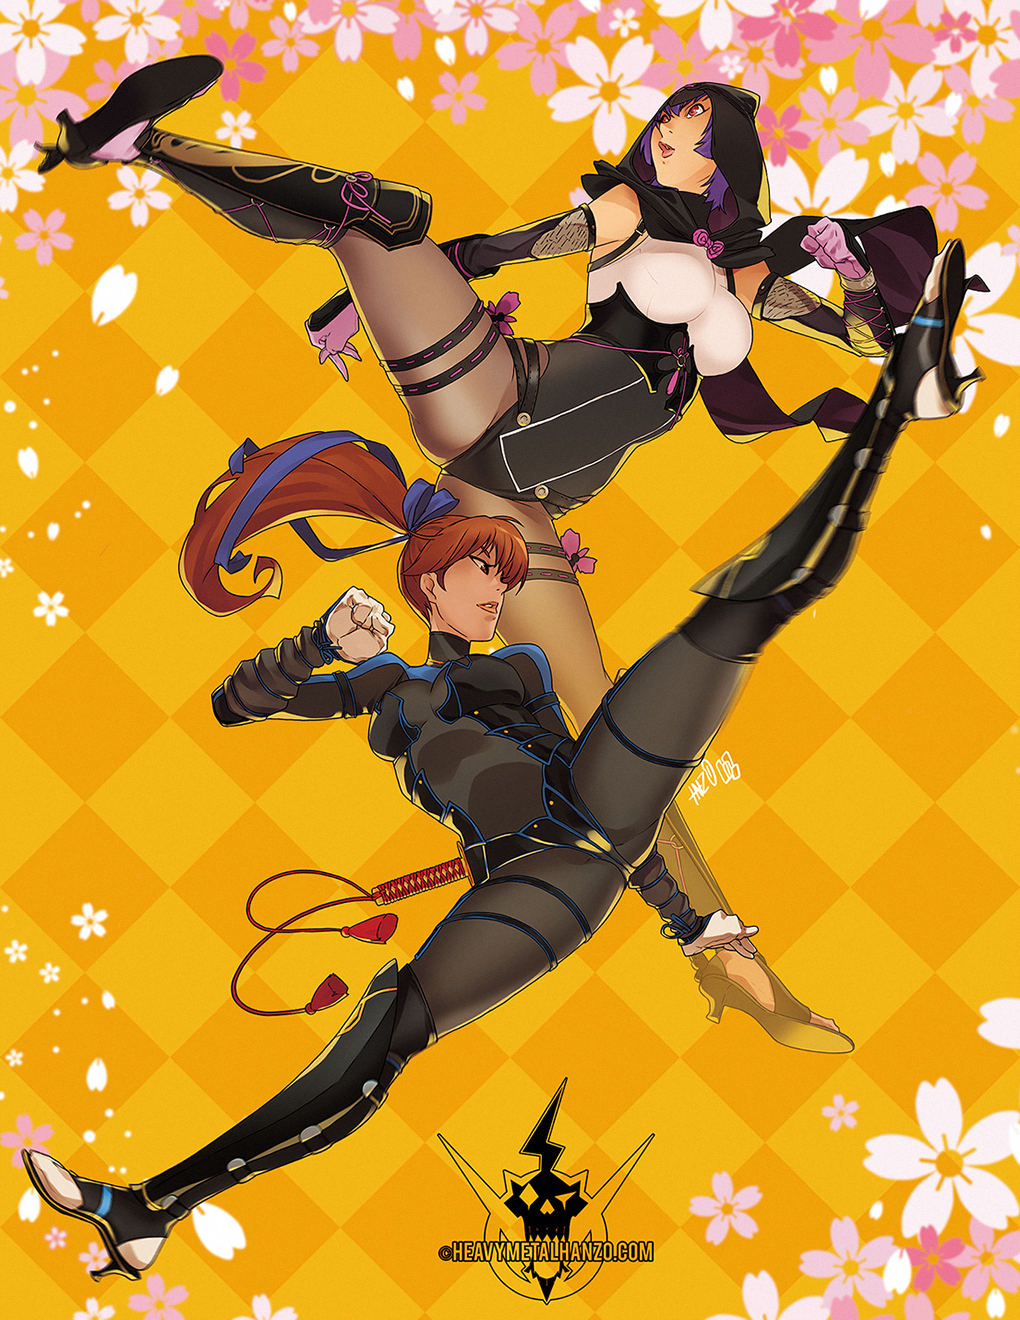 2girls alternate_costume ayane_(doa) bed_sheet black_legwear blue_ribbon bodysuit breasts brown_eyes brown_hair capelet clenched_hand dead_or_alive dead_or_alive_6 full_body greaves hair_ribbon high_heels high_kick highres hood hooded_capelet kasumi_(doa) kicking large_breasts leotard lips long_hair long_legs metalhanzo motion_blur multiple_girls ninja over-kneehighs pantyhose ponytail purple_hair red_eyes ribbon siblings sisters source_request spread_legs thick_thighs thigh-highs thigh_strap thighs vambraces watermark web_address